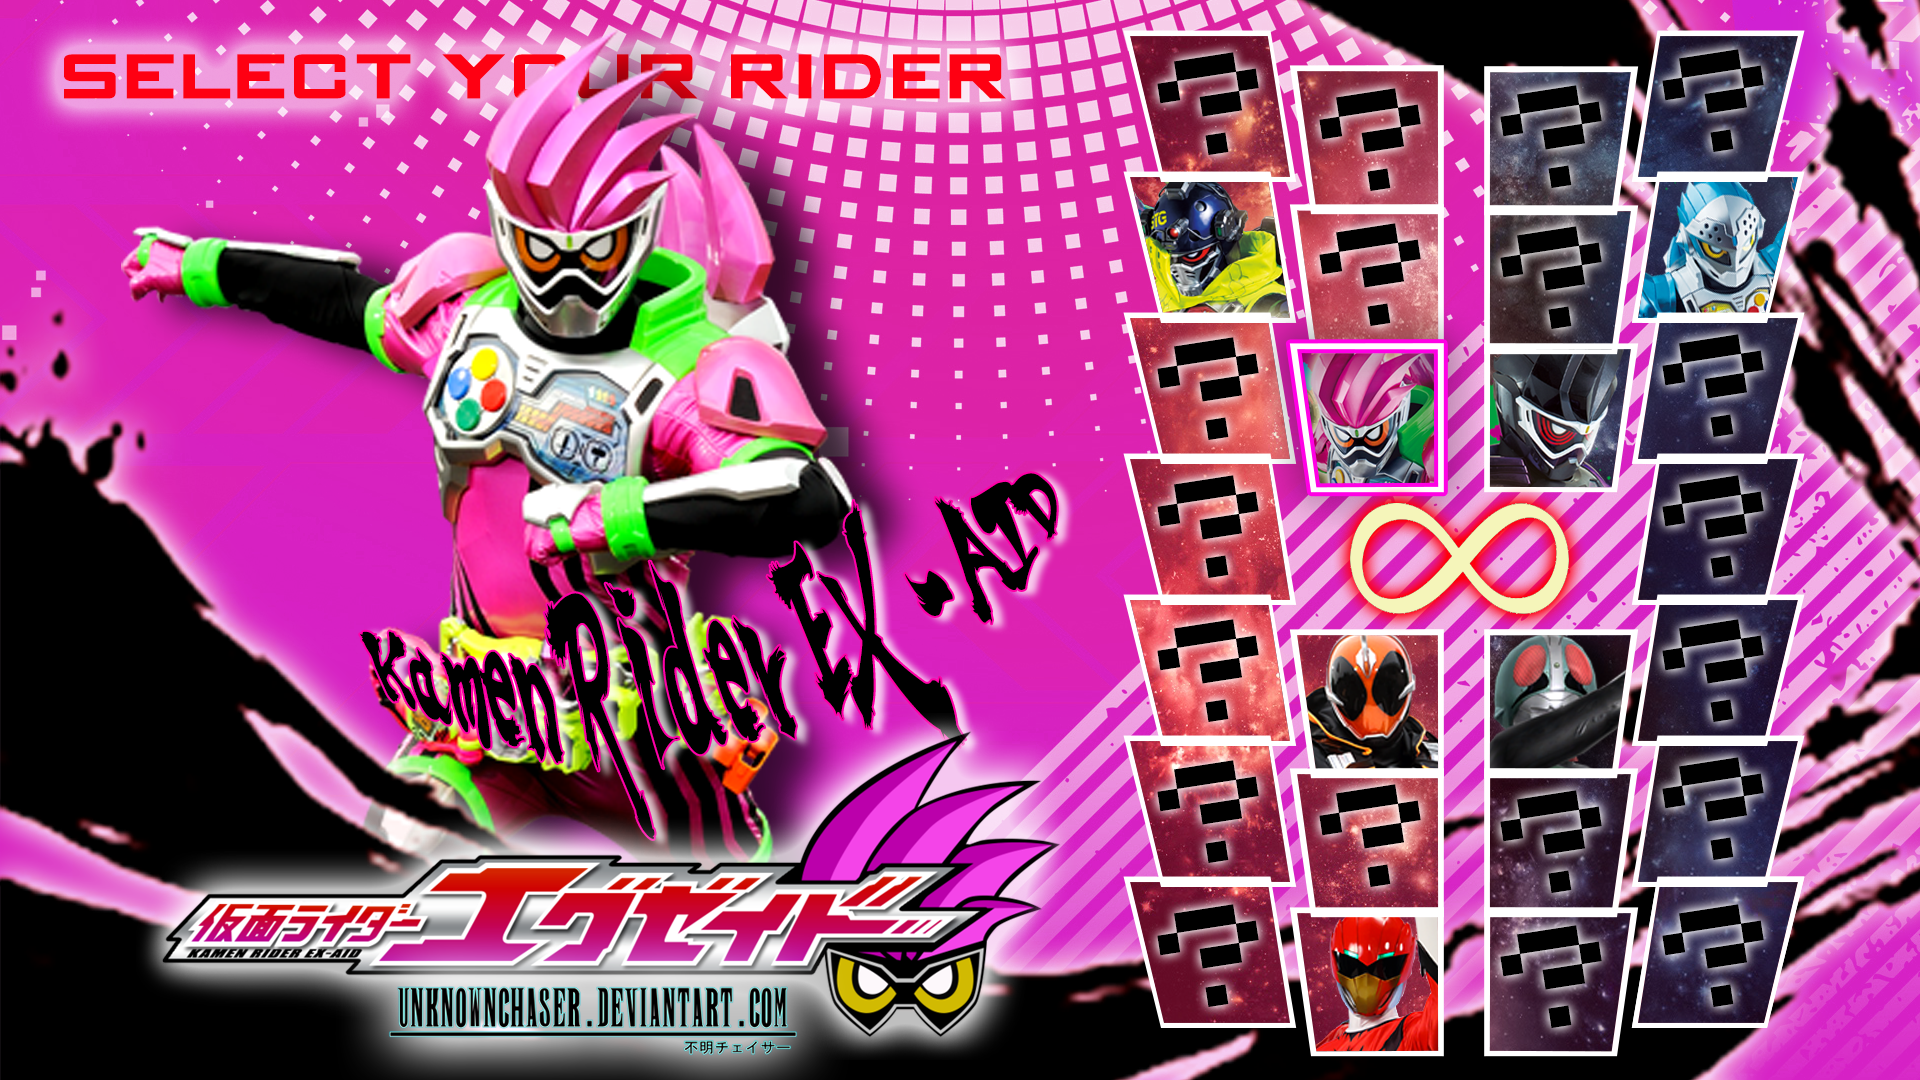 Kamen Rider Ex Aid Wallpaper By Unknownchaser On Deviantart